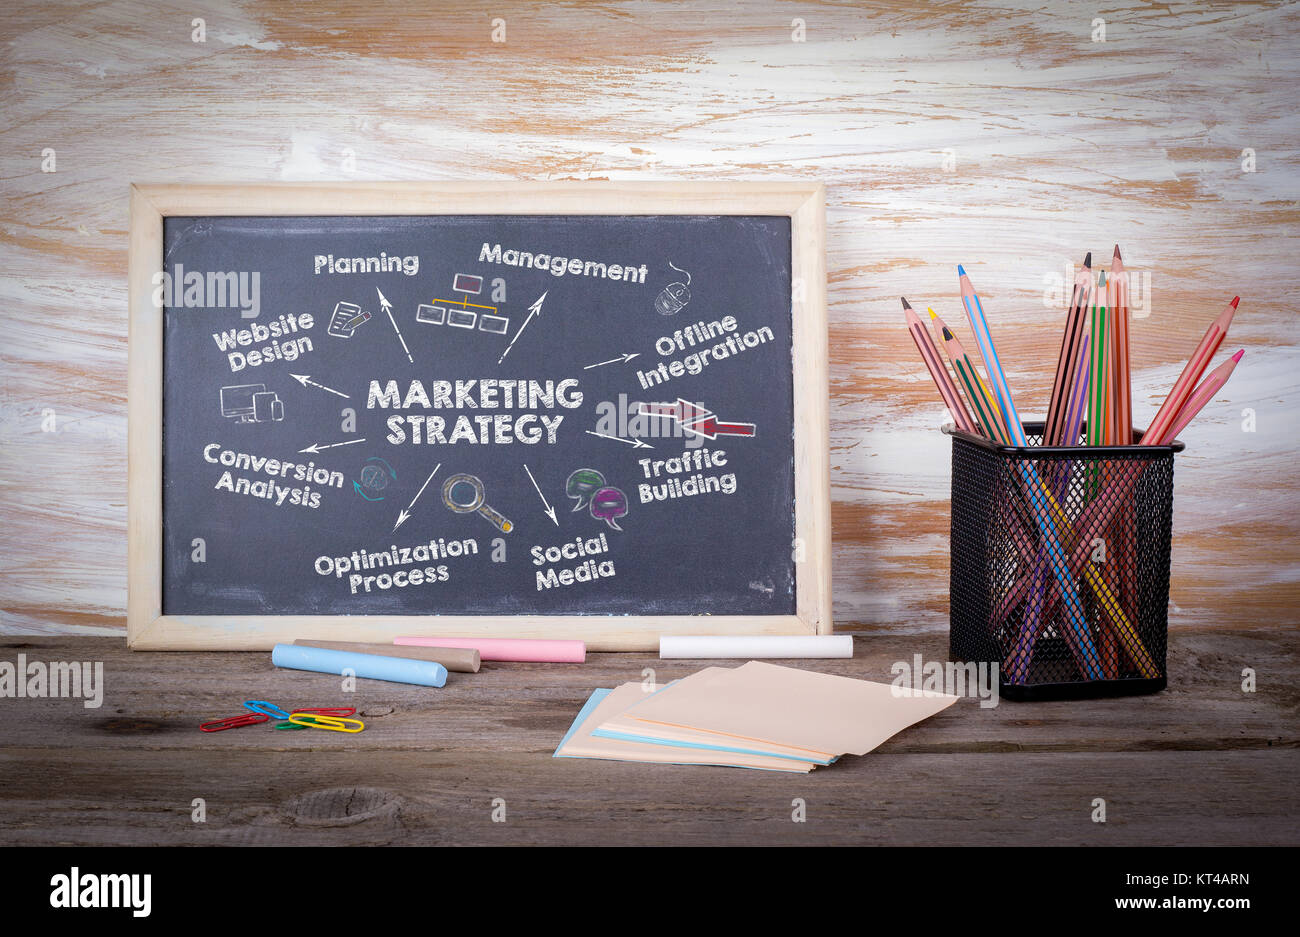 marketing strategy concept. Chart with keywords and icons. Old wooden table with texture - Stock Image